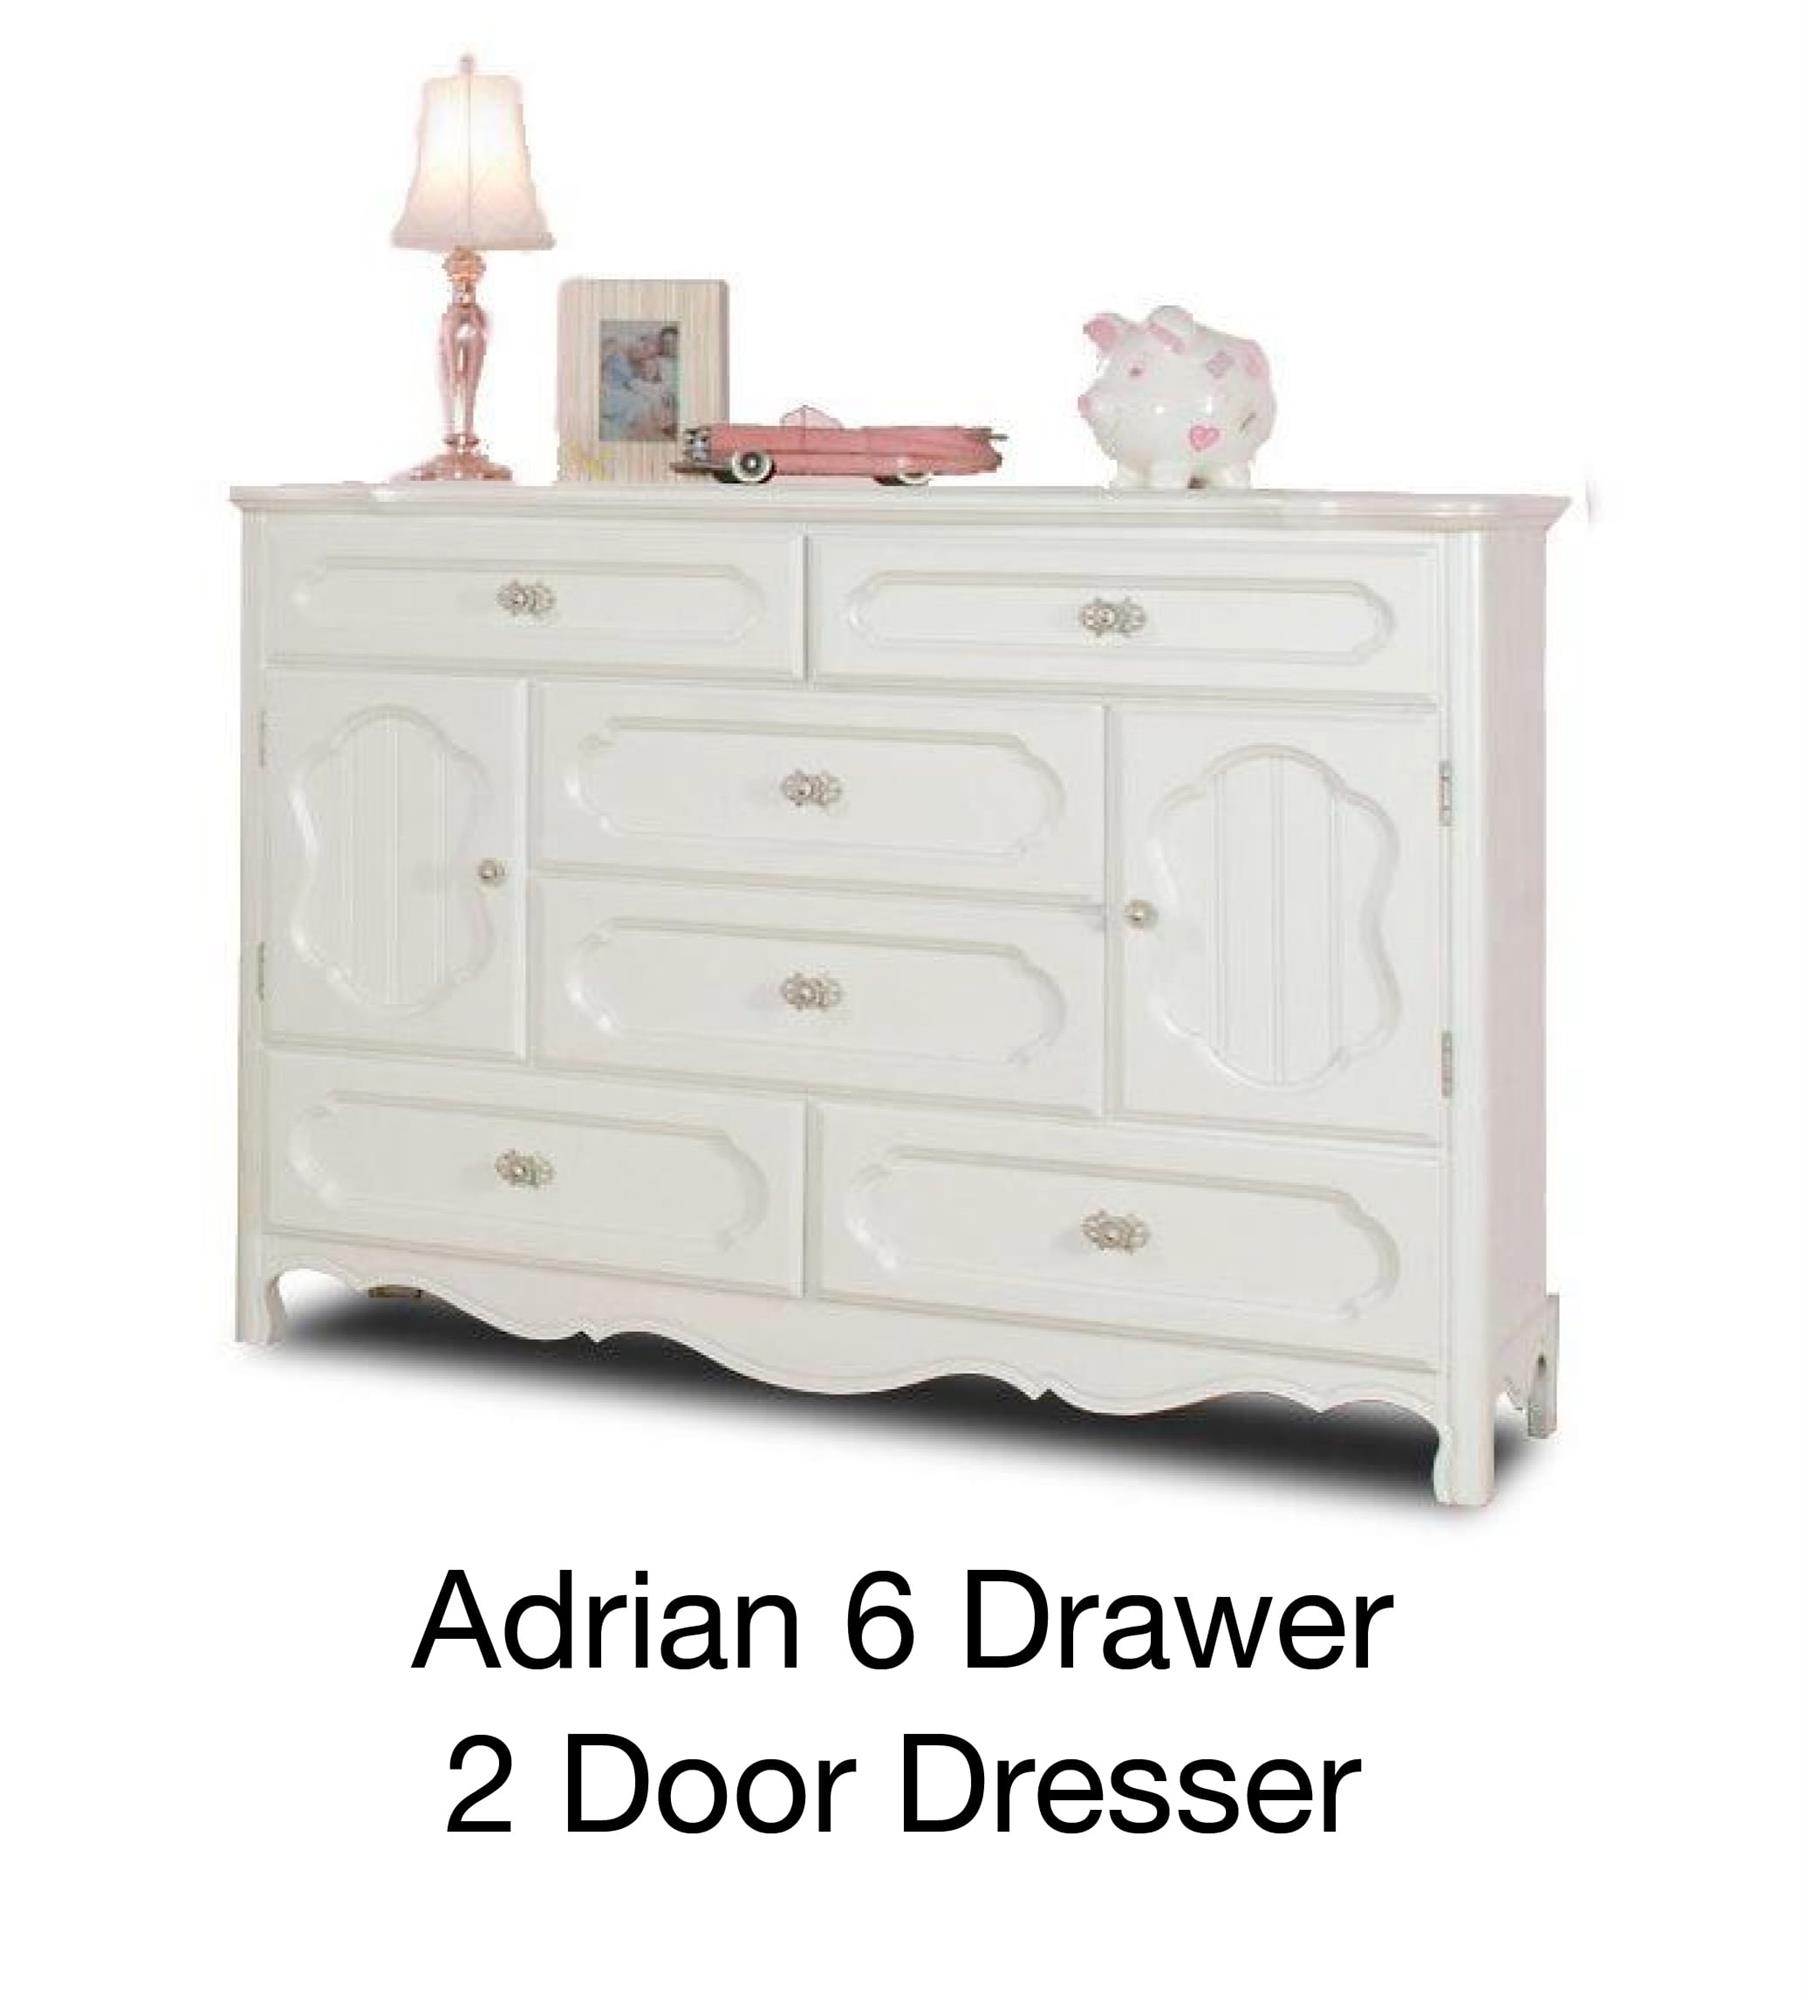 Adrian 6 Drawer 2 Door Dresser